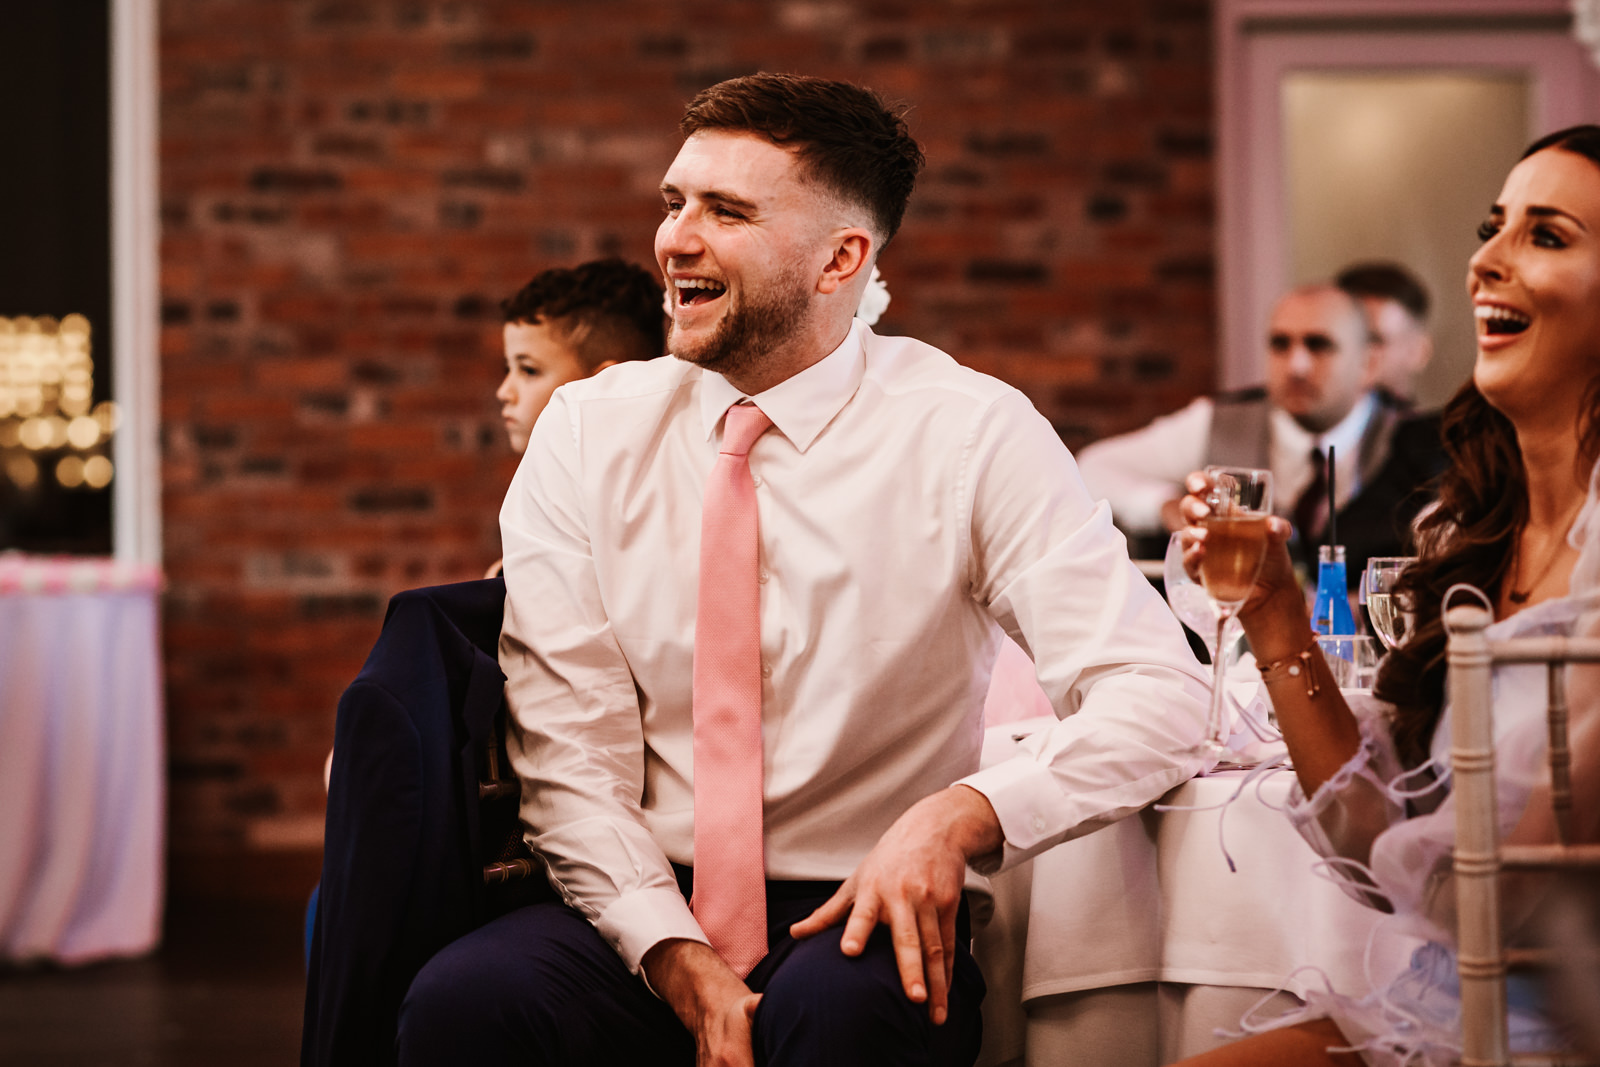 Brother of the bride laughing during speeches